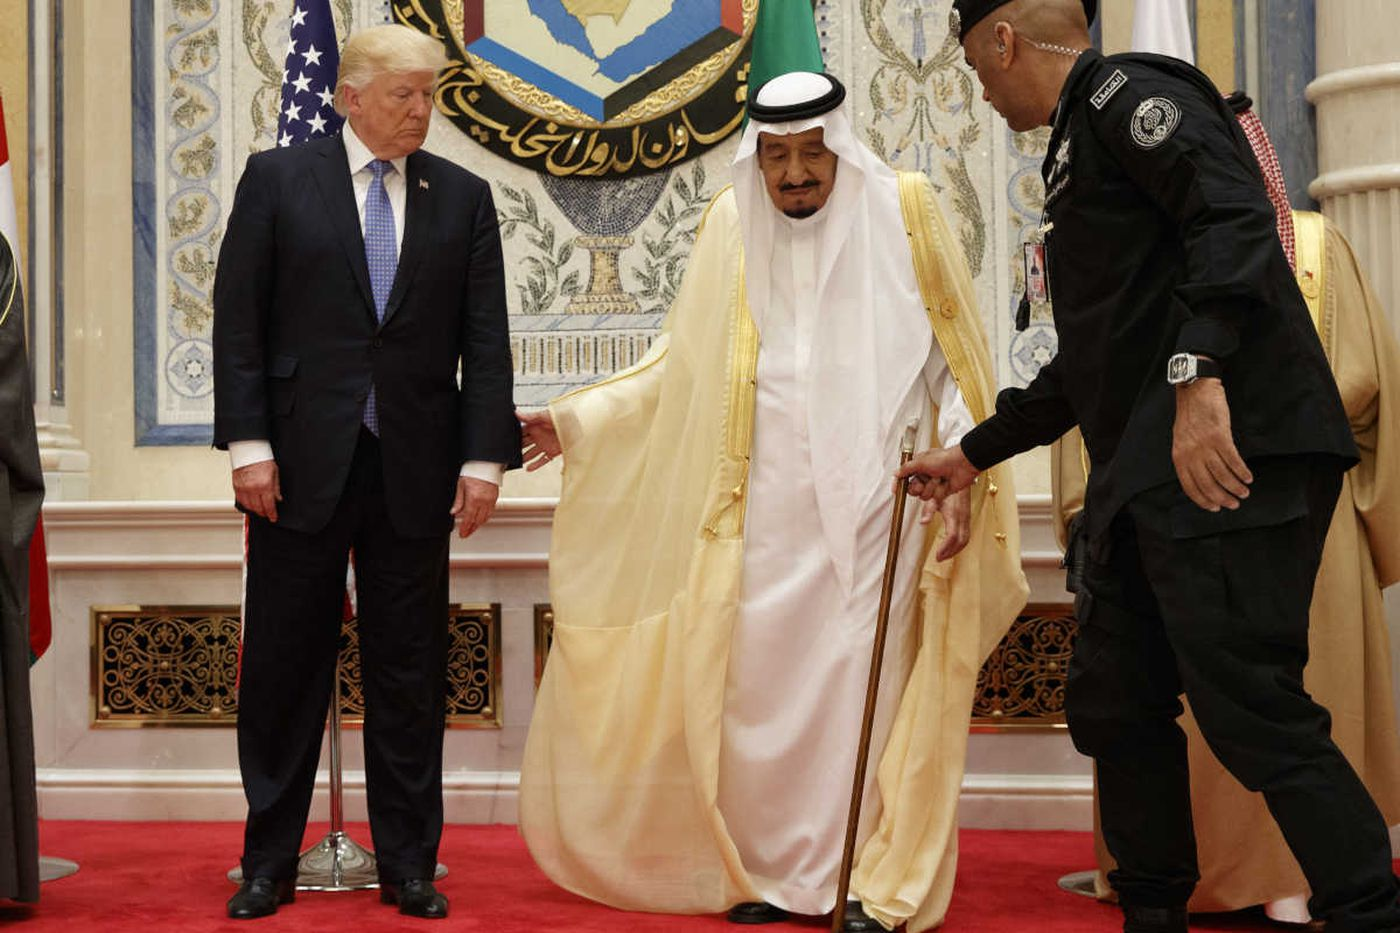 Selling weapons to Saudi Arabia is hypocritical